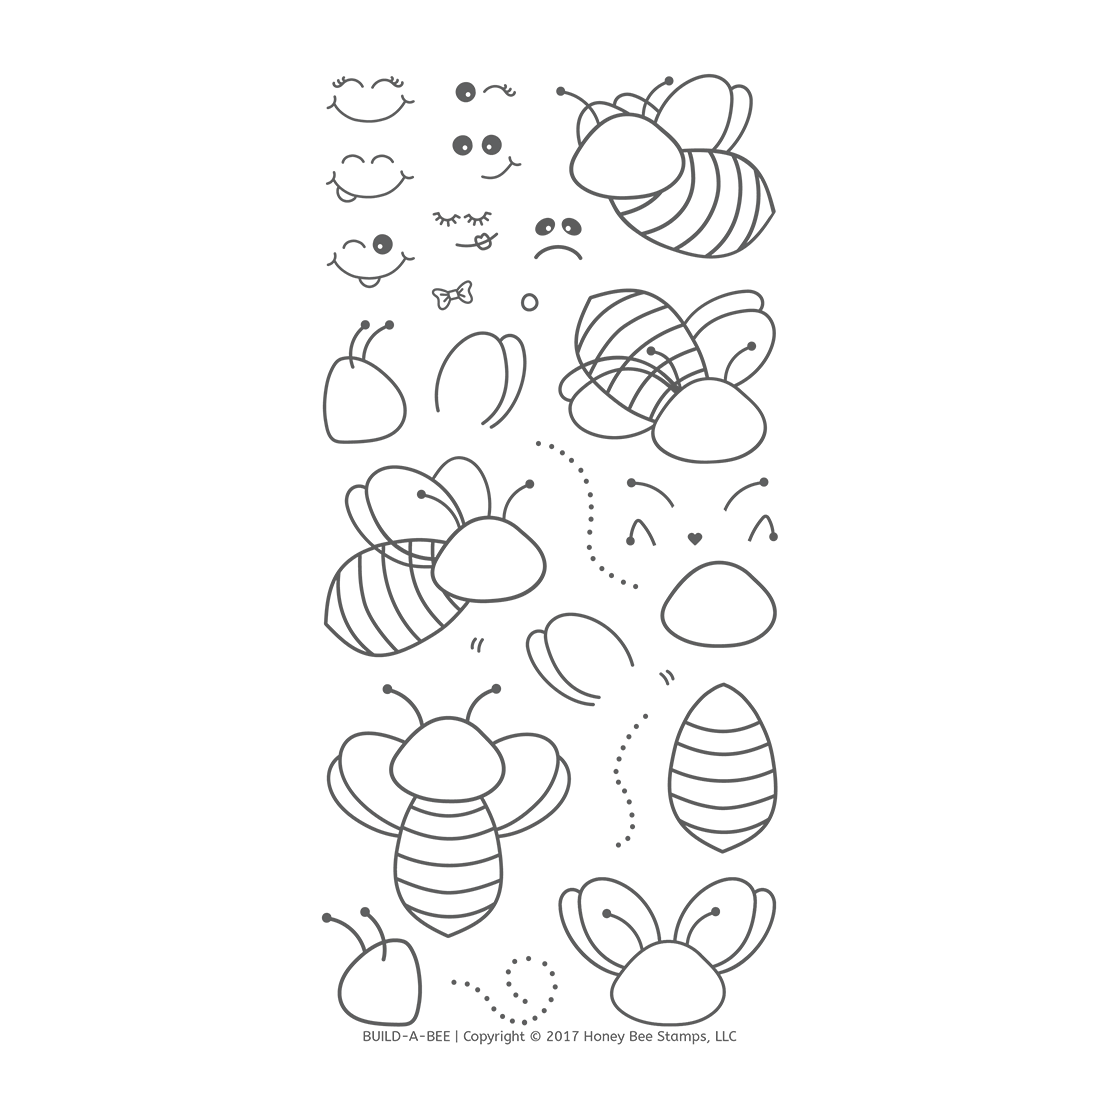 Honeybee Bee Stamps - Build-A-Bee | 4x8 Stamp Set